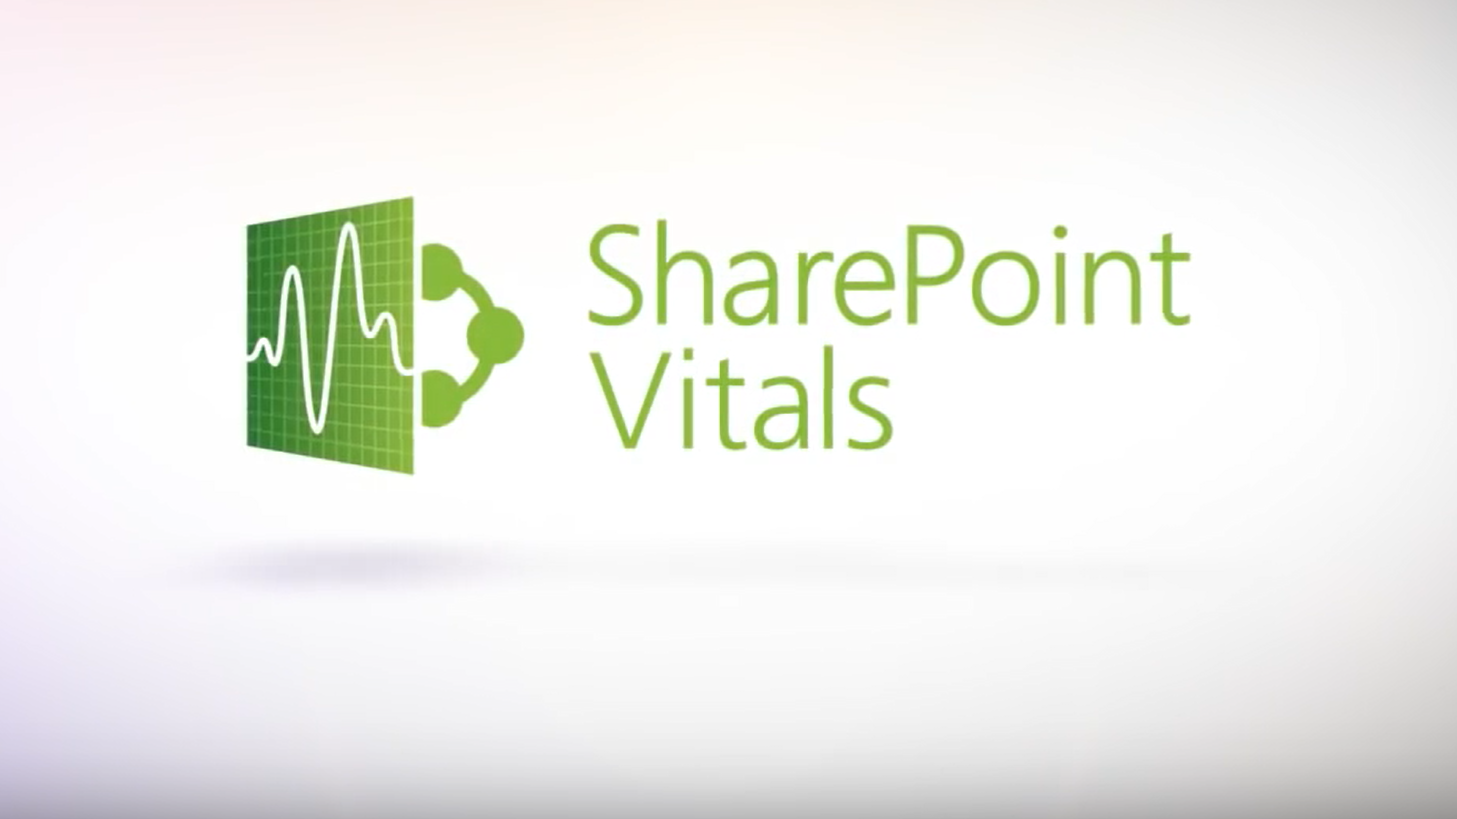 Video for SharePoint Vitals